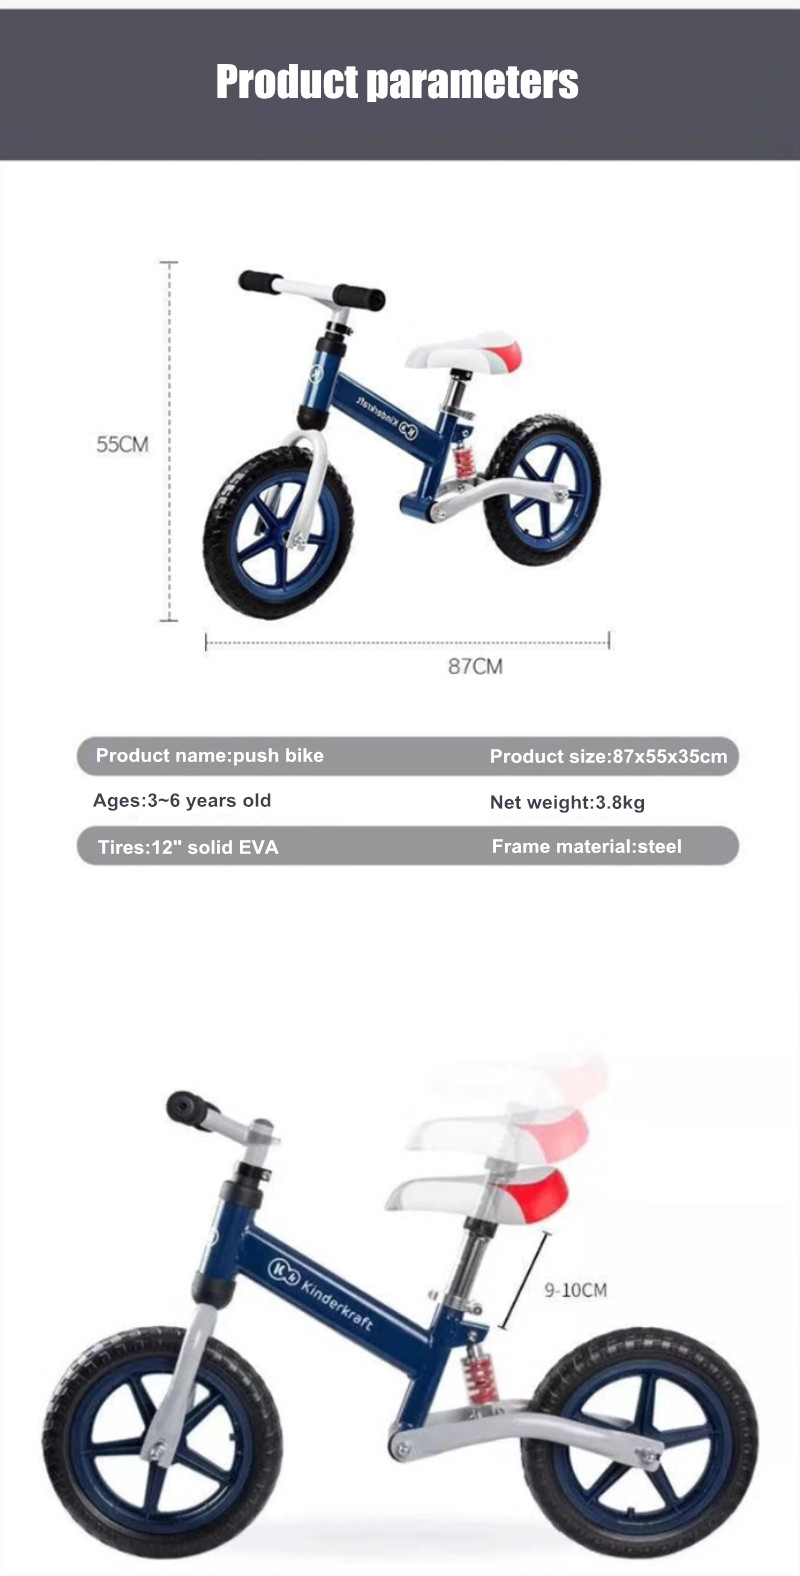 Hc40b147b1e584541beff588cb7d3feddo Brand New Balance Bike Bicycle For Kids 3~6 Ages Child Toddler Complete Cycling Bike Learn to Ride Bicicleta No Pedal Push Bike